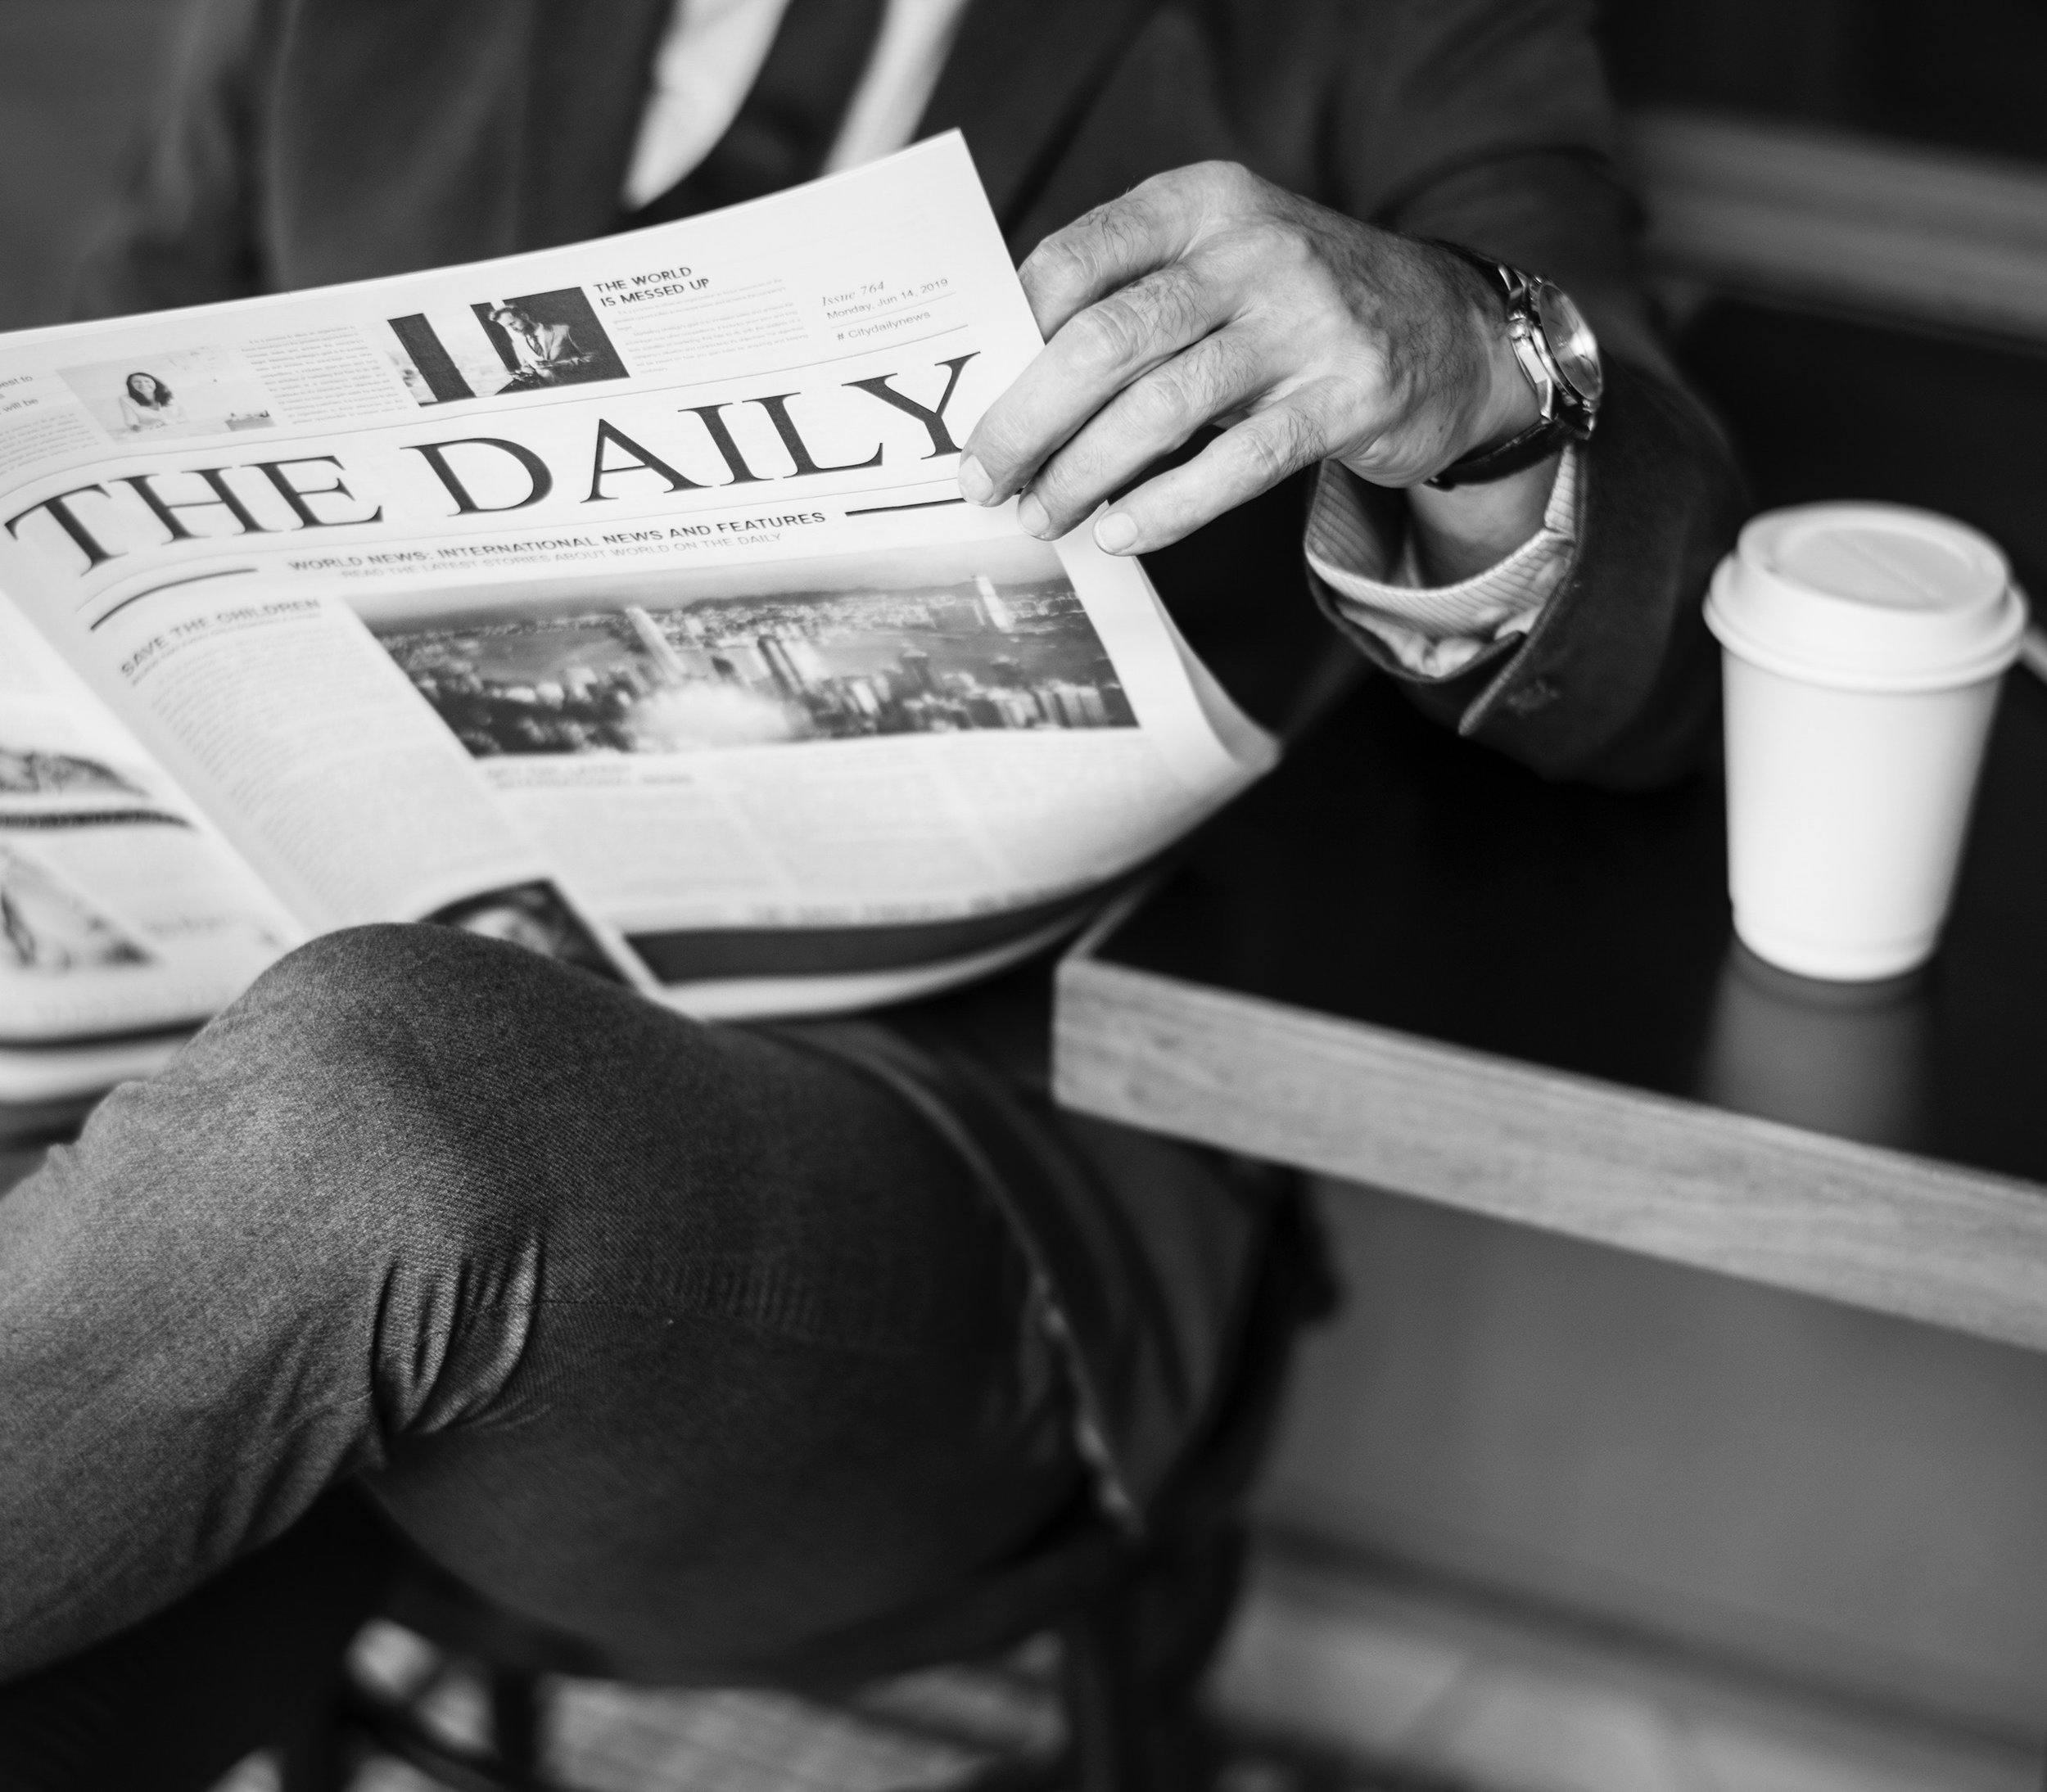 A person reads a newspaper while sitting on a bench with a paper coffee cup on a table beside them